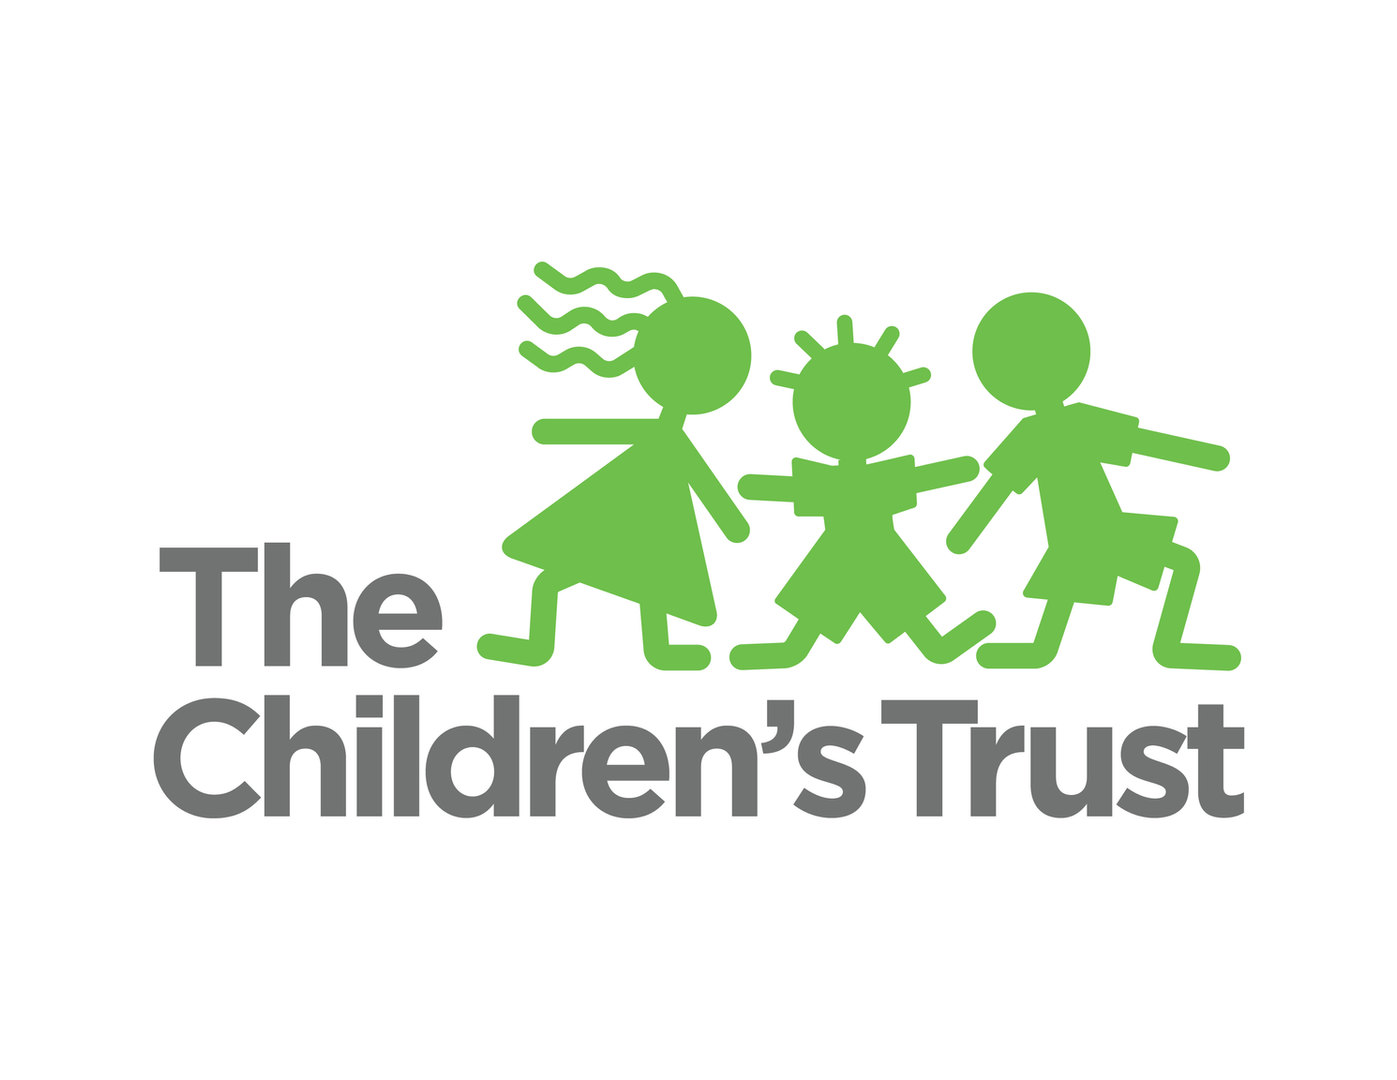 the_childrens_trust_logo_color-rgb_2.jpg